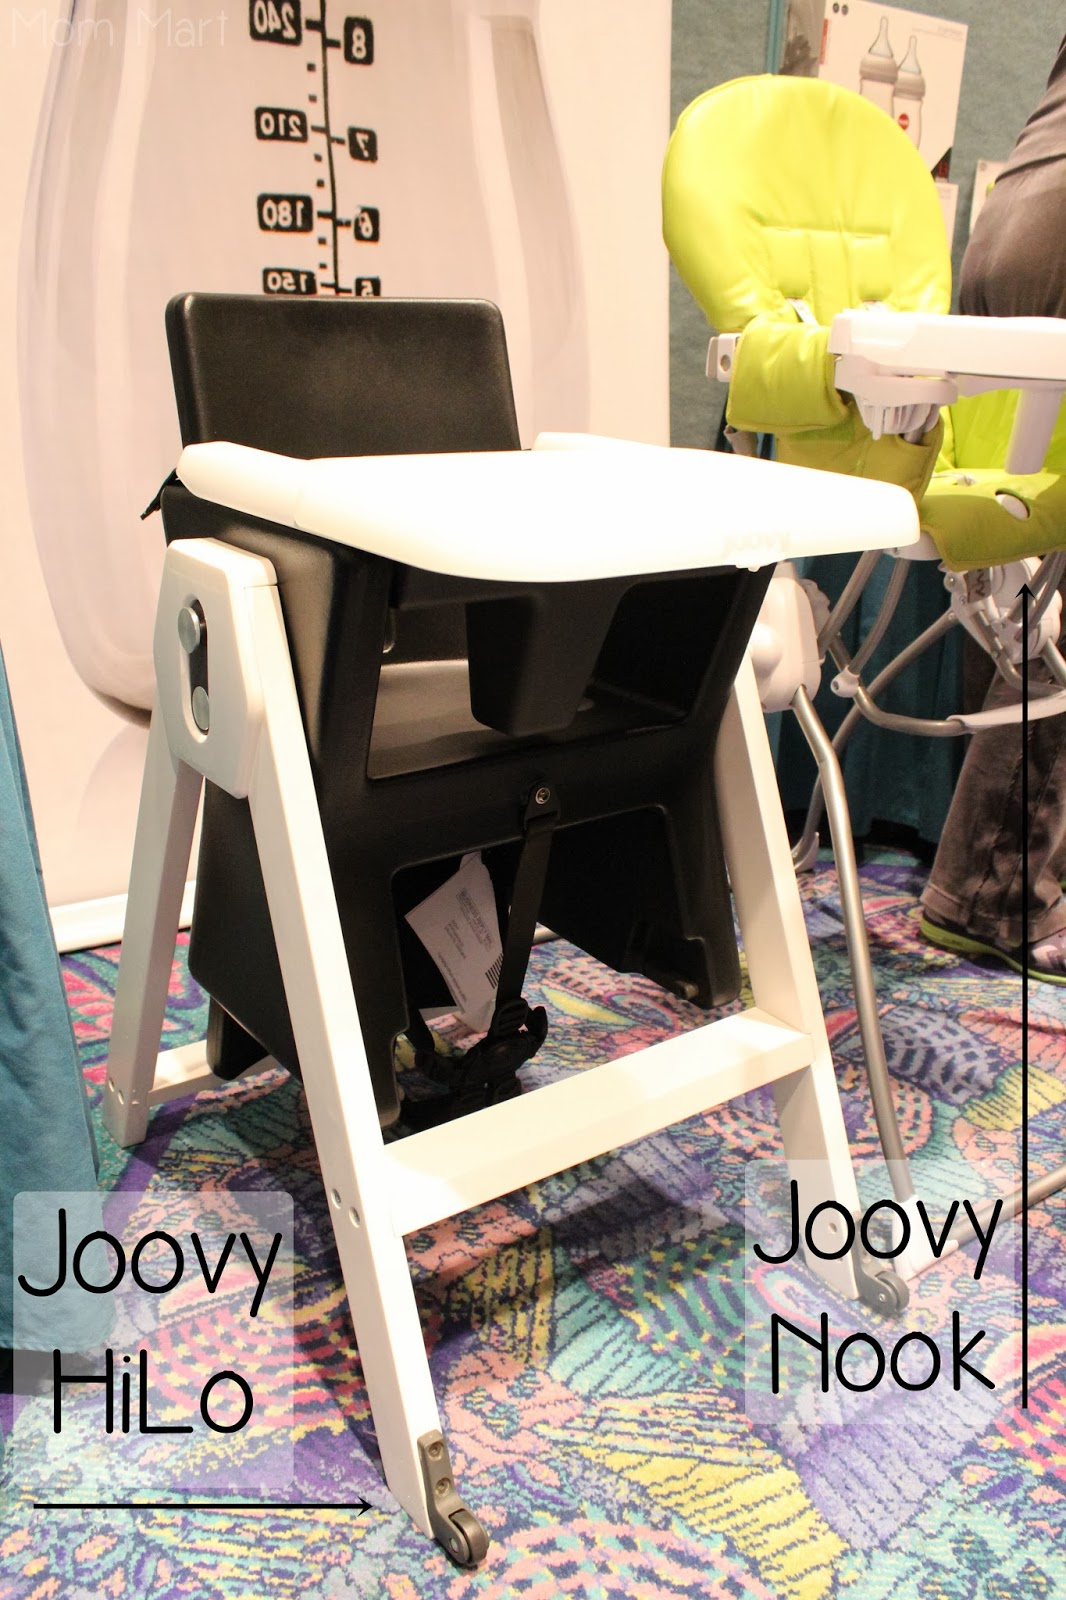 2014 Joovy HiLo and Nook Highchairs side by side at #MommyCon #MommyConChicago